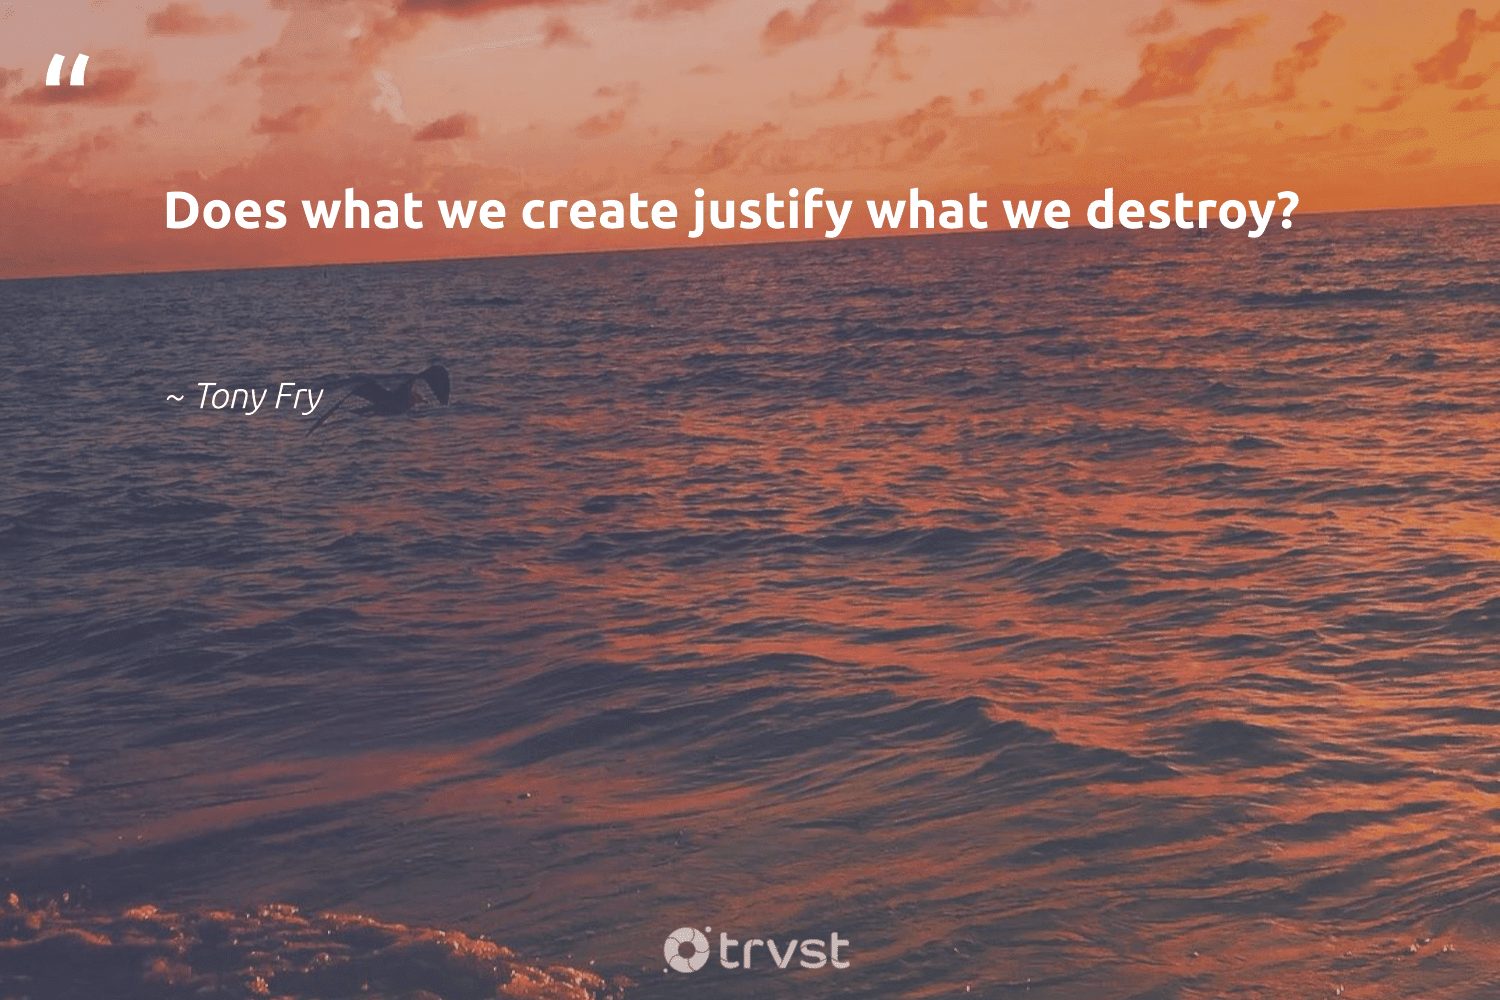 """""""Does what we create justify what we destroy?""""  - Tony Fry #trvst #quotes #ecoconscious #bethechange #gogreen #dotherightthing #sustainability #dosomething #wecandobetter #impact #environment #dogood"""